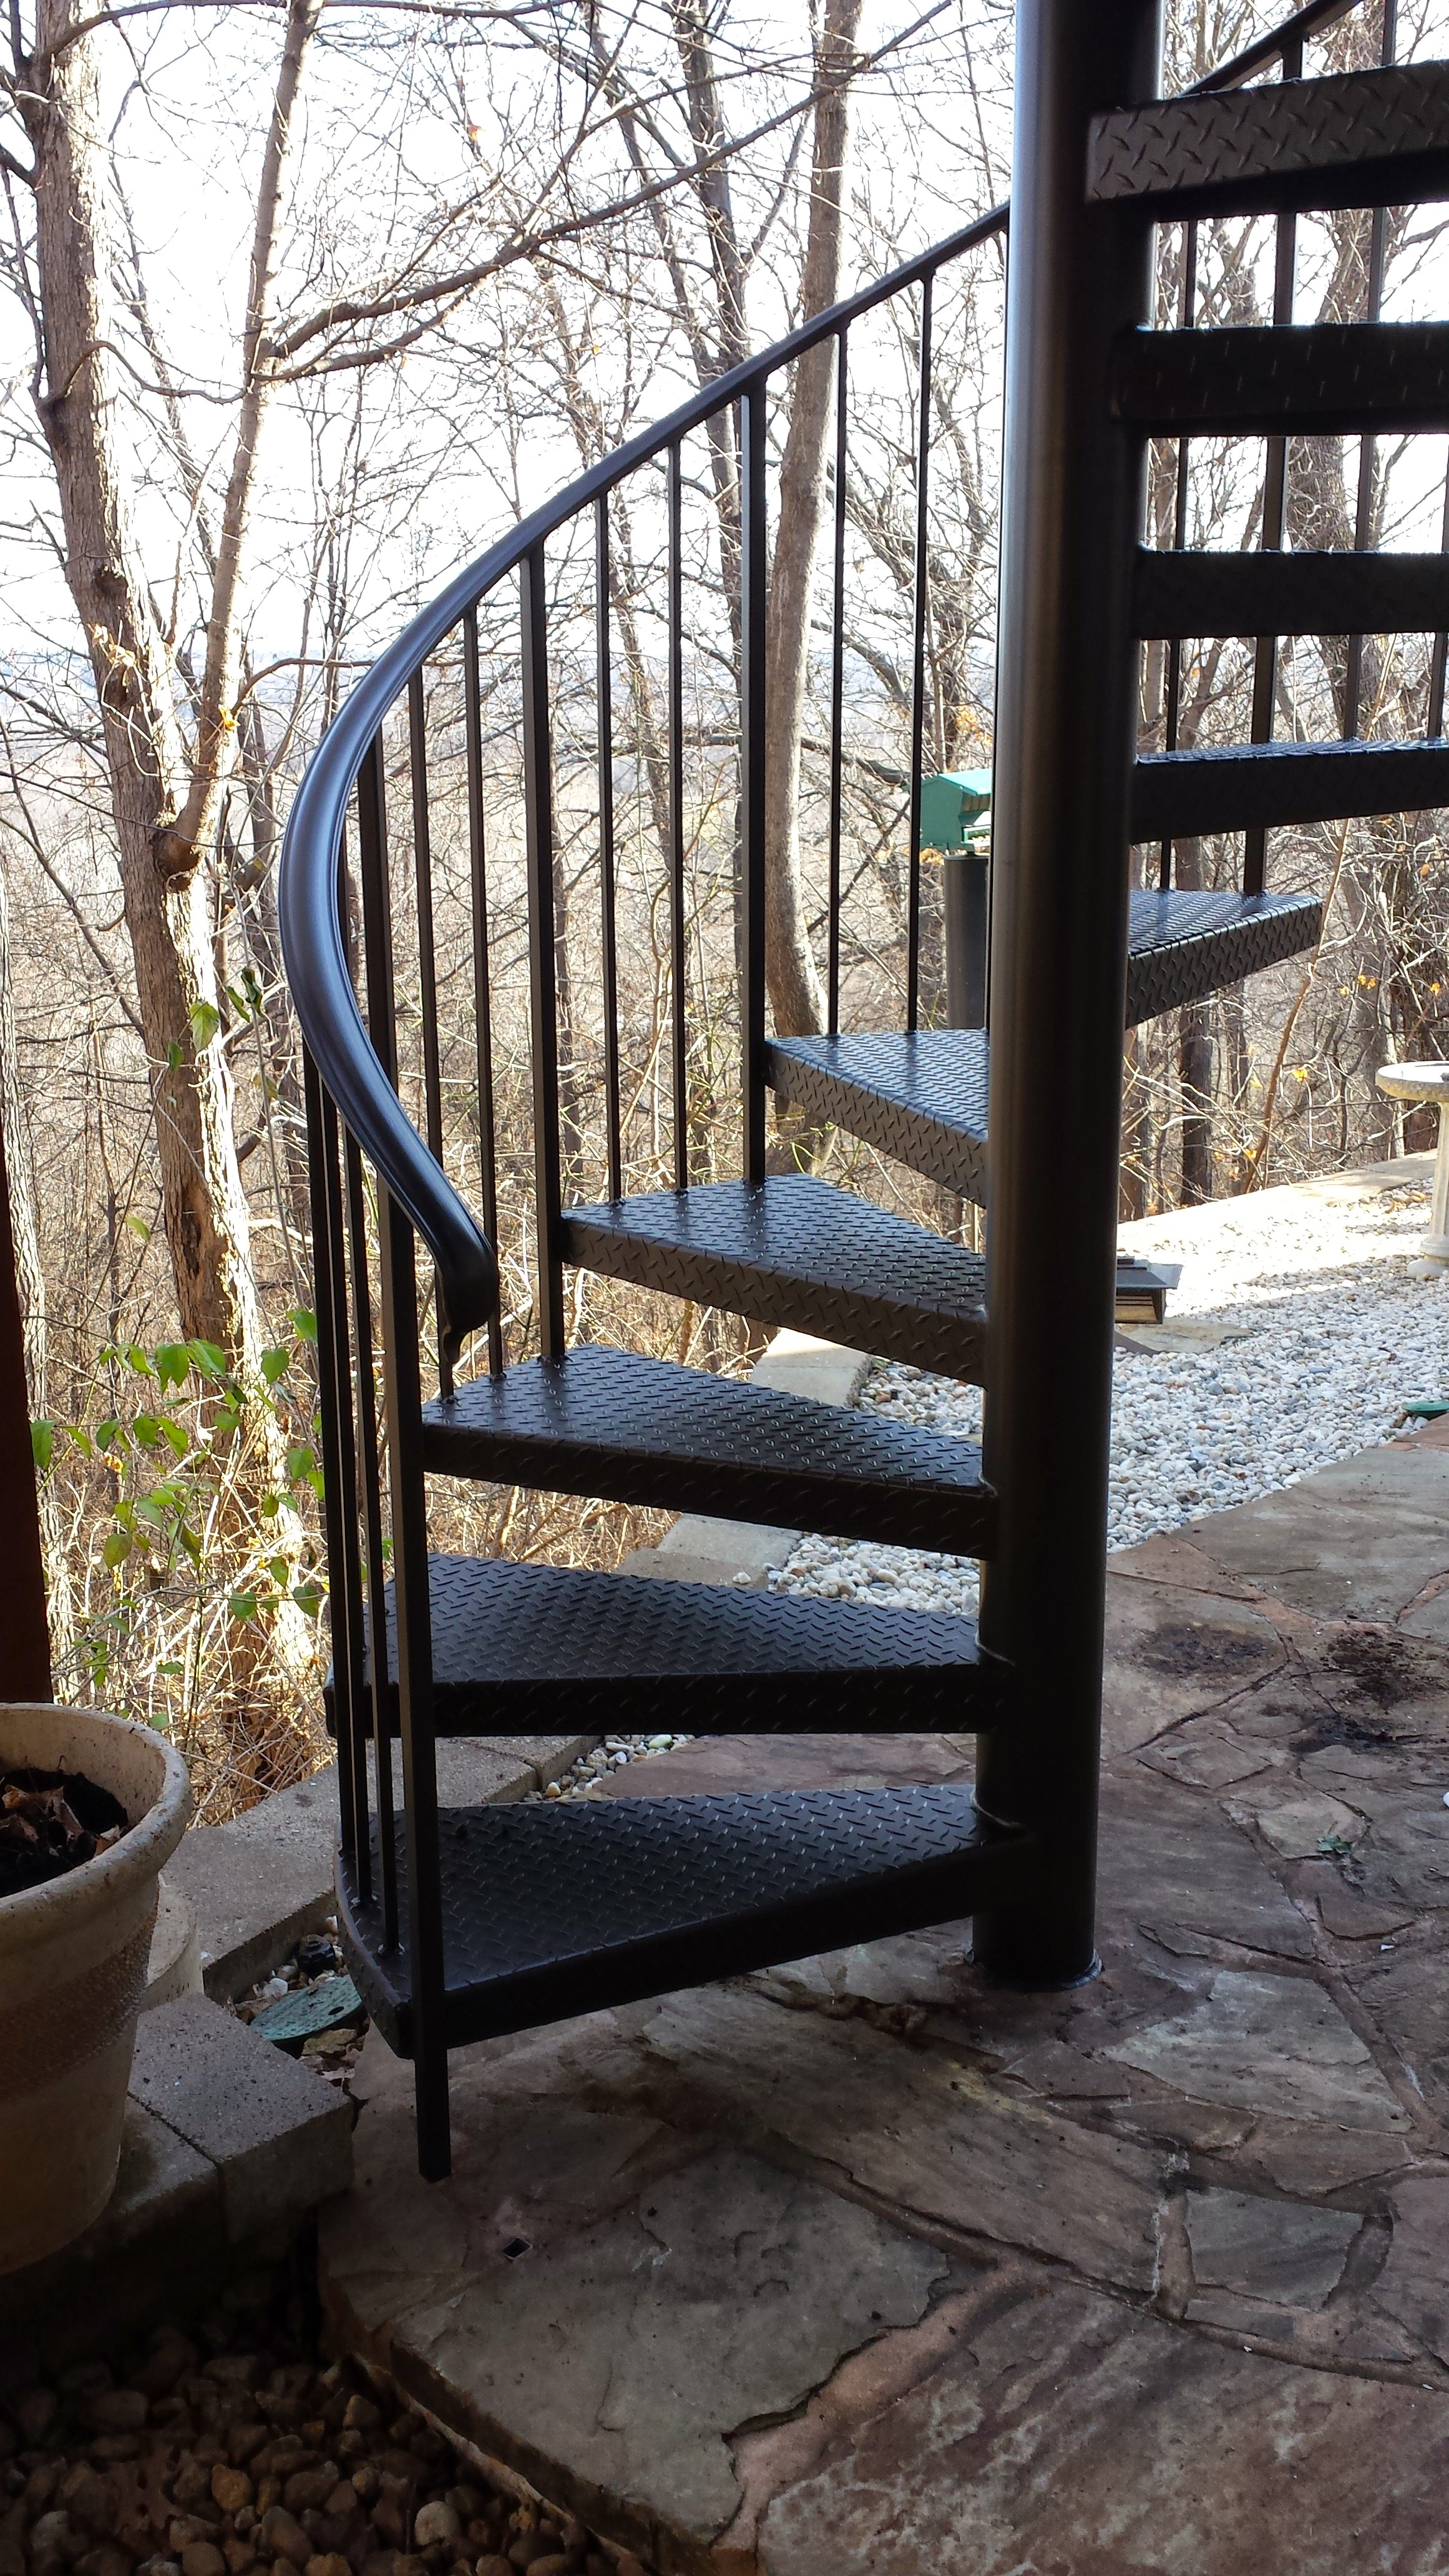 Our Customer Had An Existing Steel Spiral Staircase That The Paint Was Ling Off Of And Wanted To Replace It Since Their Other Handrails On Deck Were